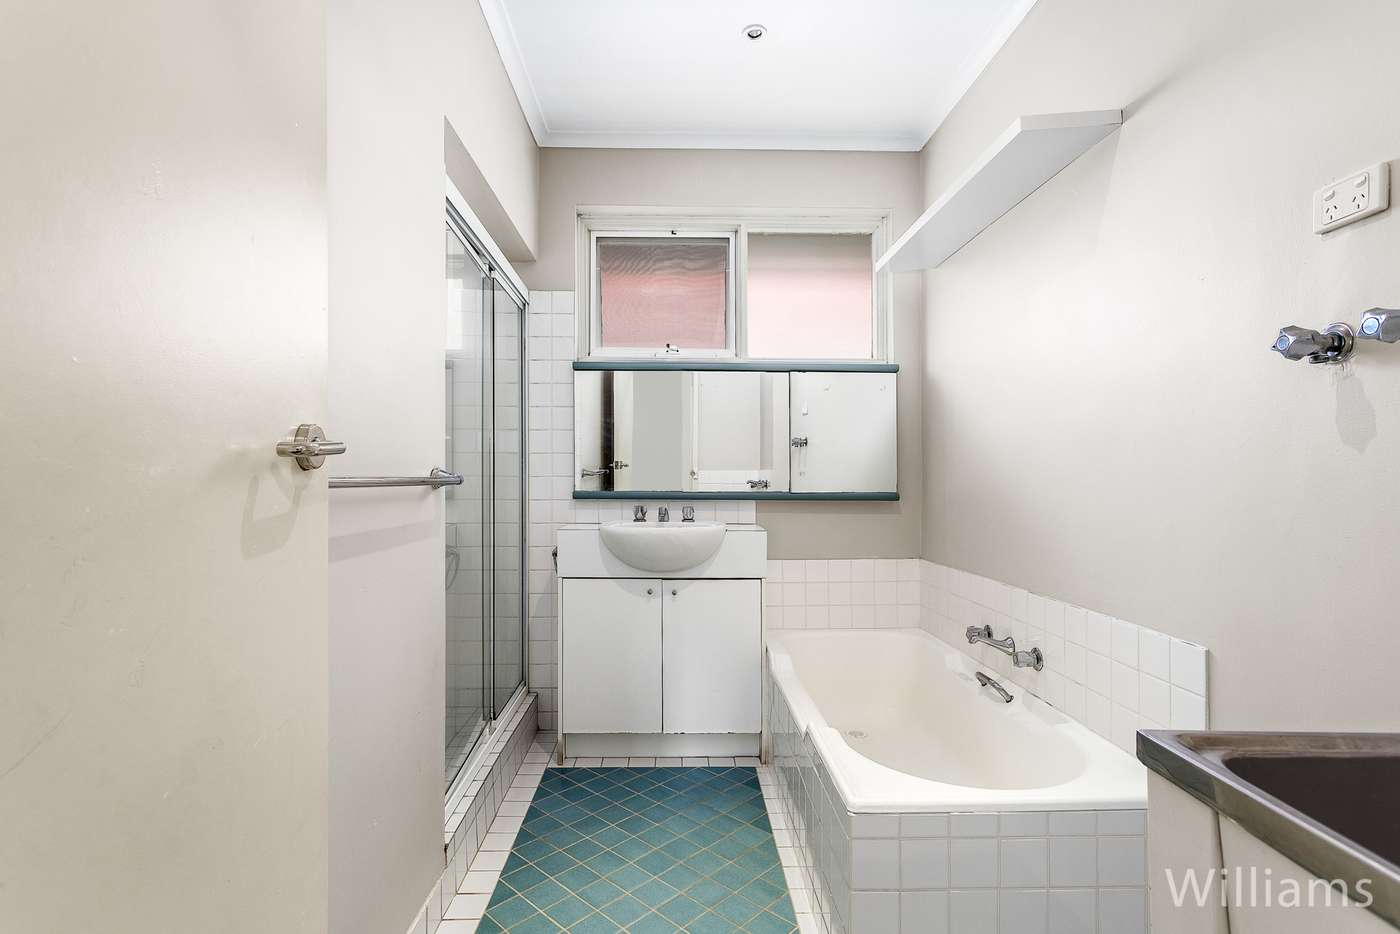 Seventh view of Homely apartment listing, 3/27 Belmont Avenue, Glen Iris VIC 3146